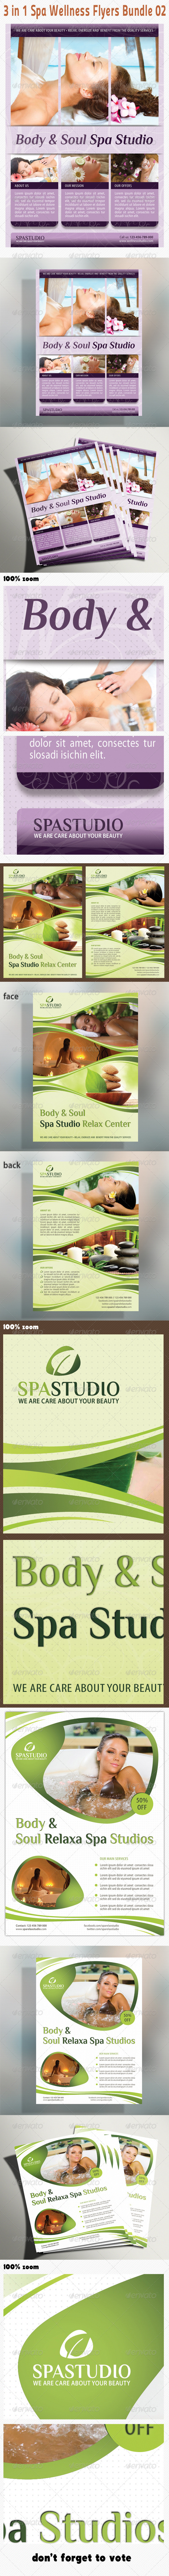 GraphicRiver 3 in 1 Spa Wellness Flyers Bundle 02 5387890